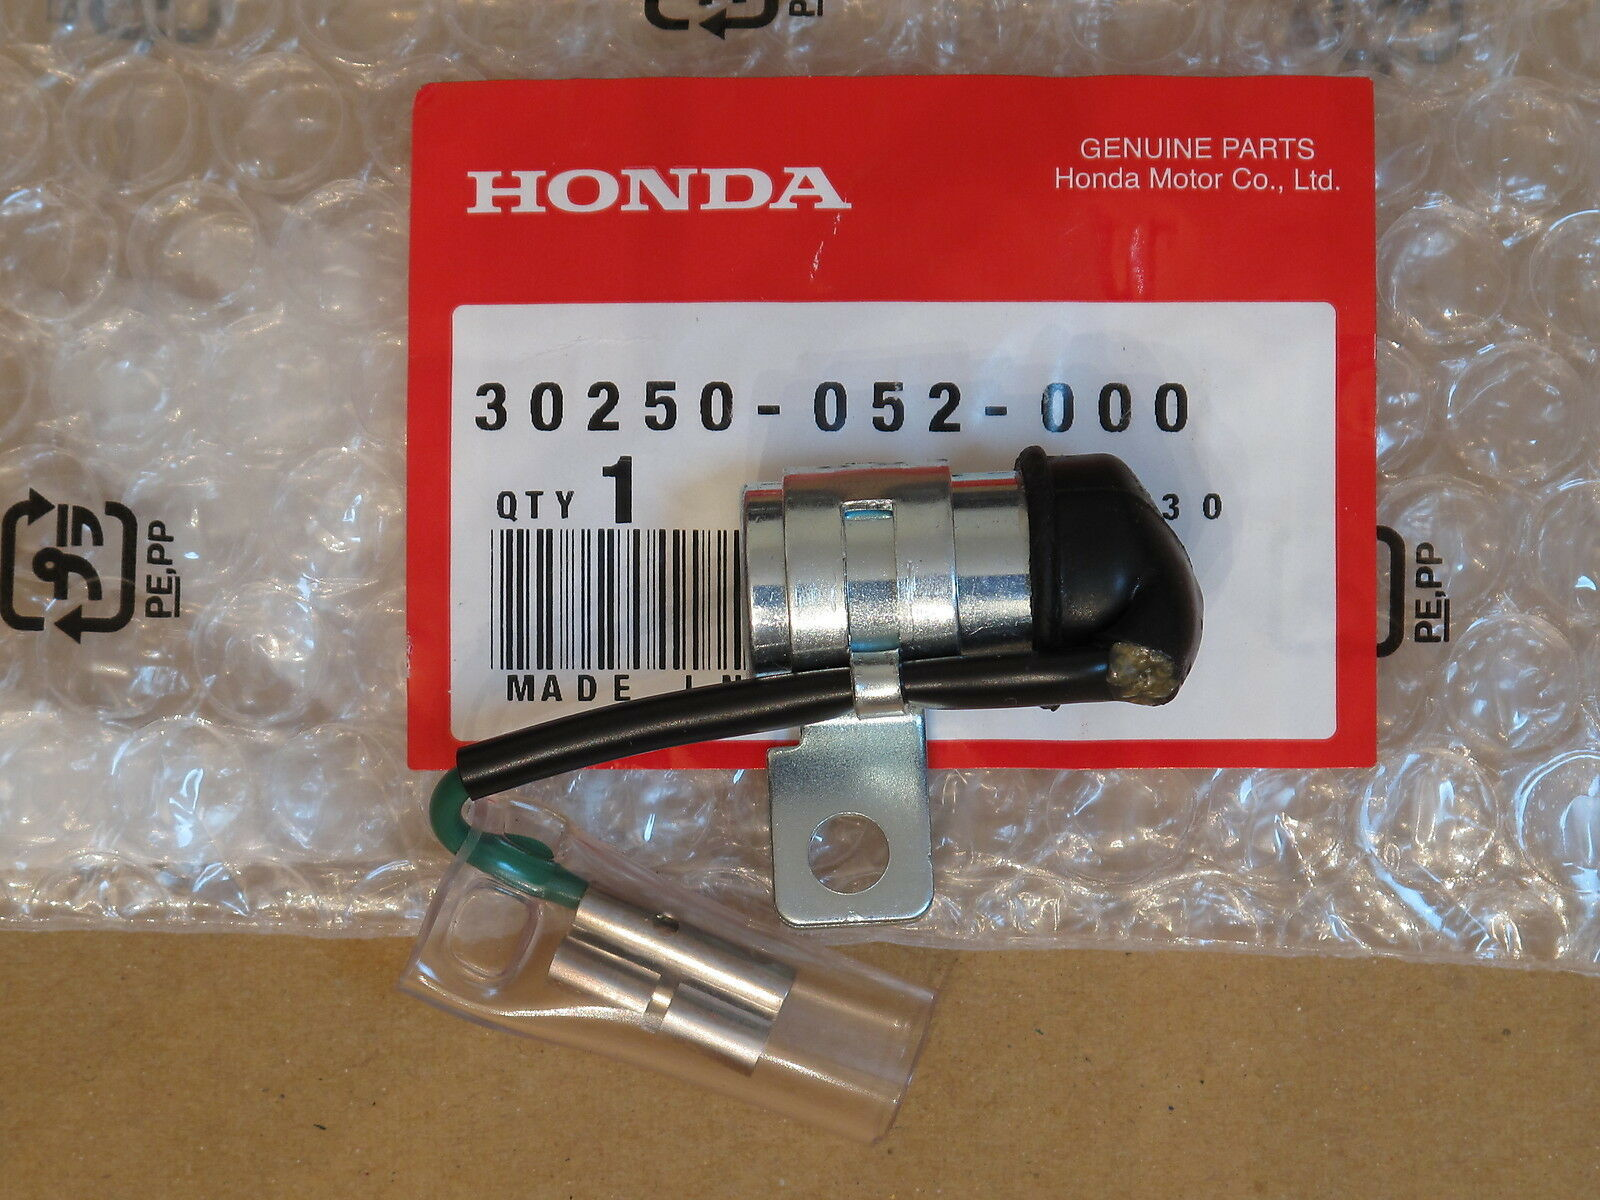 Honda CT90 ATC90 CONDENSOR 30250-052-000 1 of 1Only 4 available ...